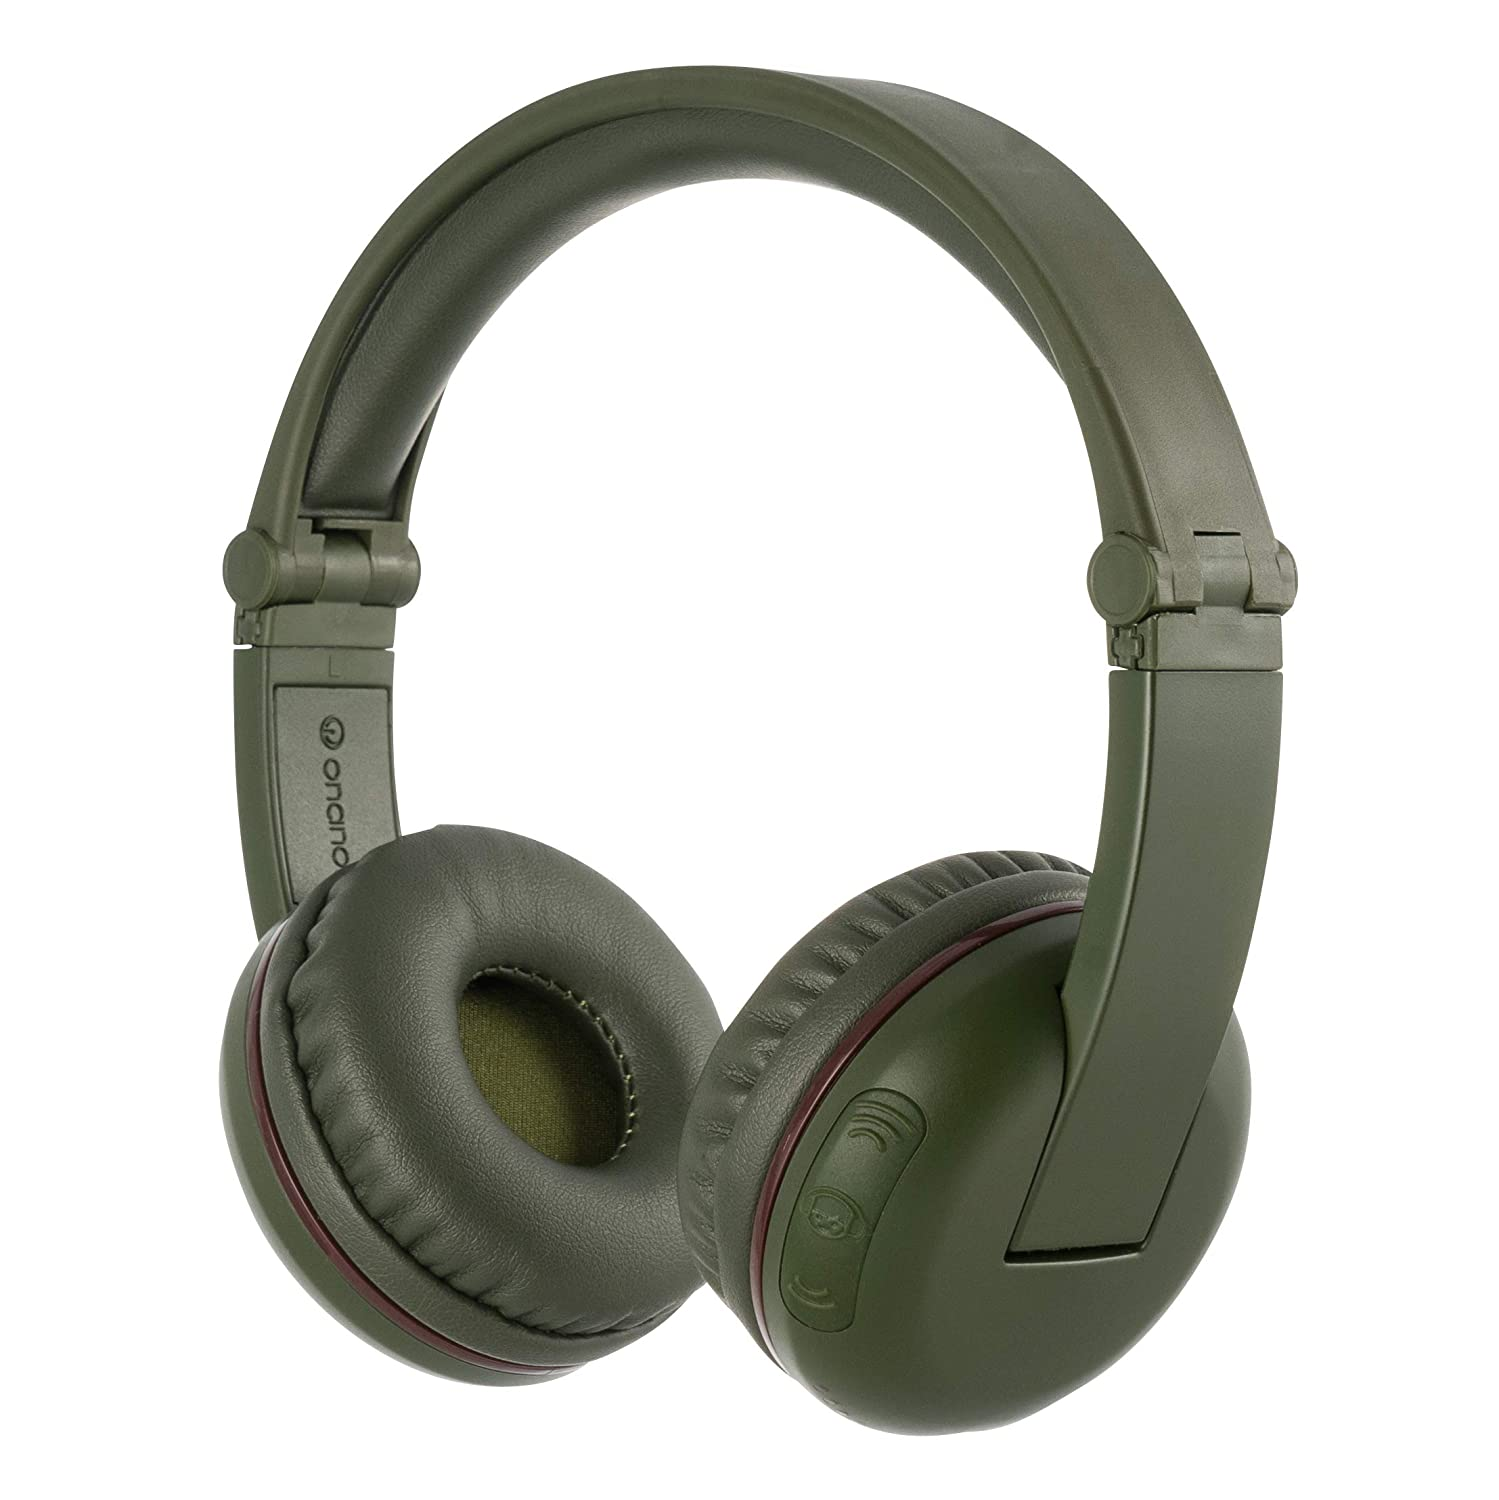 ONANOFF BuddyPhones Play, Wireless Bluetooth Volume-Limiting Kids Headphones, 14-Hour Battery Life, 4 Volume Settings of 75, 85, 94dB and StudyMode, Includes Backup Cable for Sharing, Green